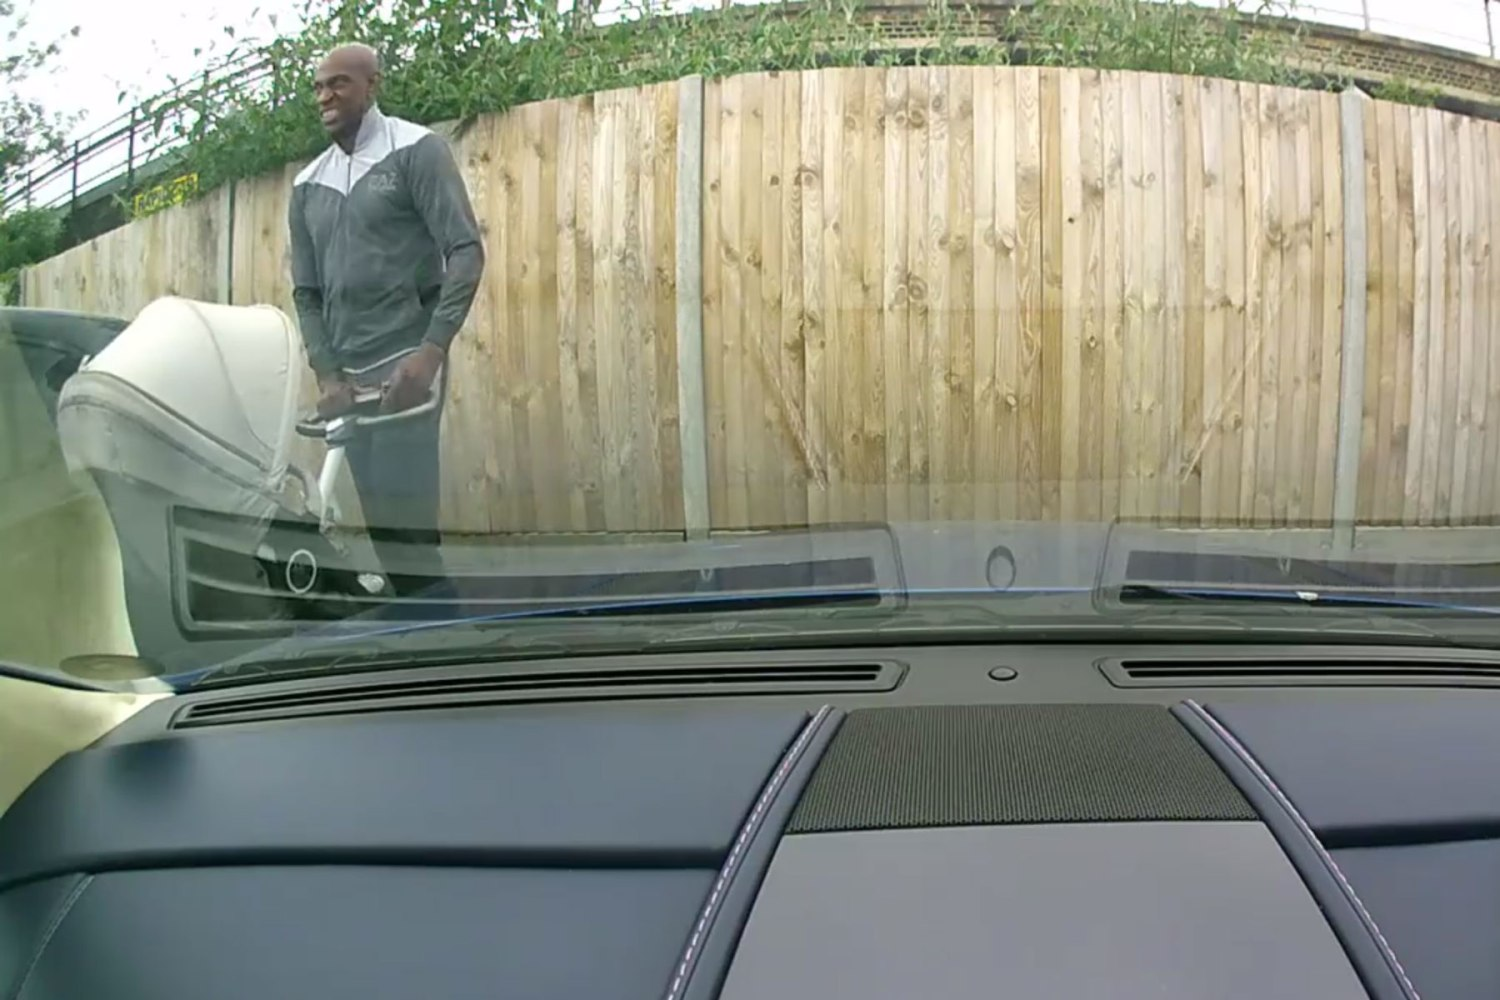 Police appeal to find man who keyed Aston Martin